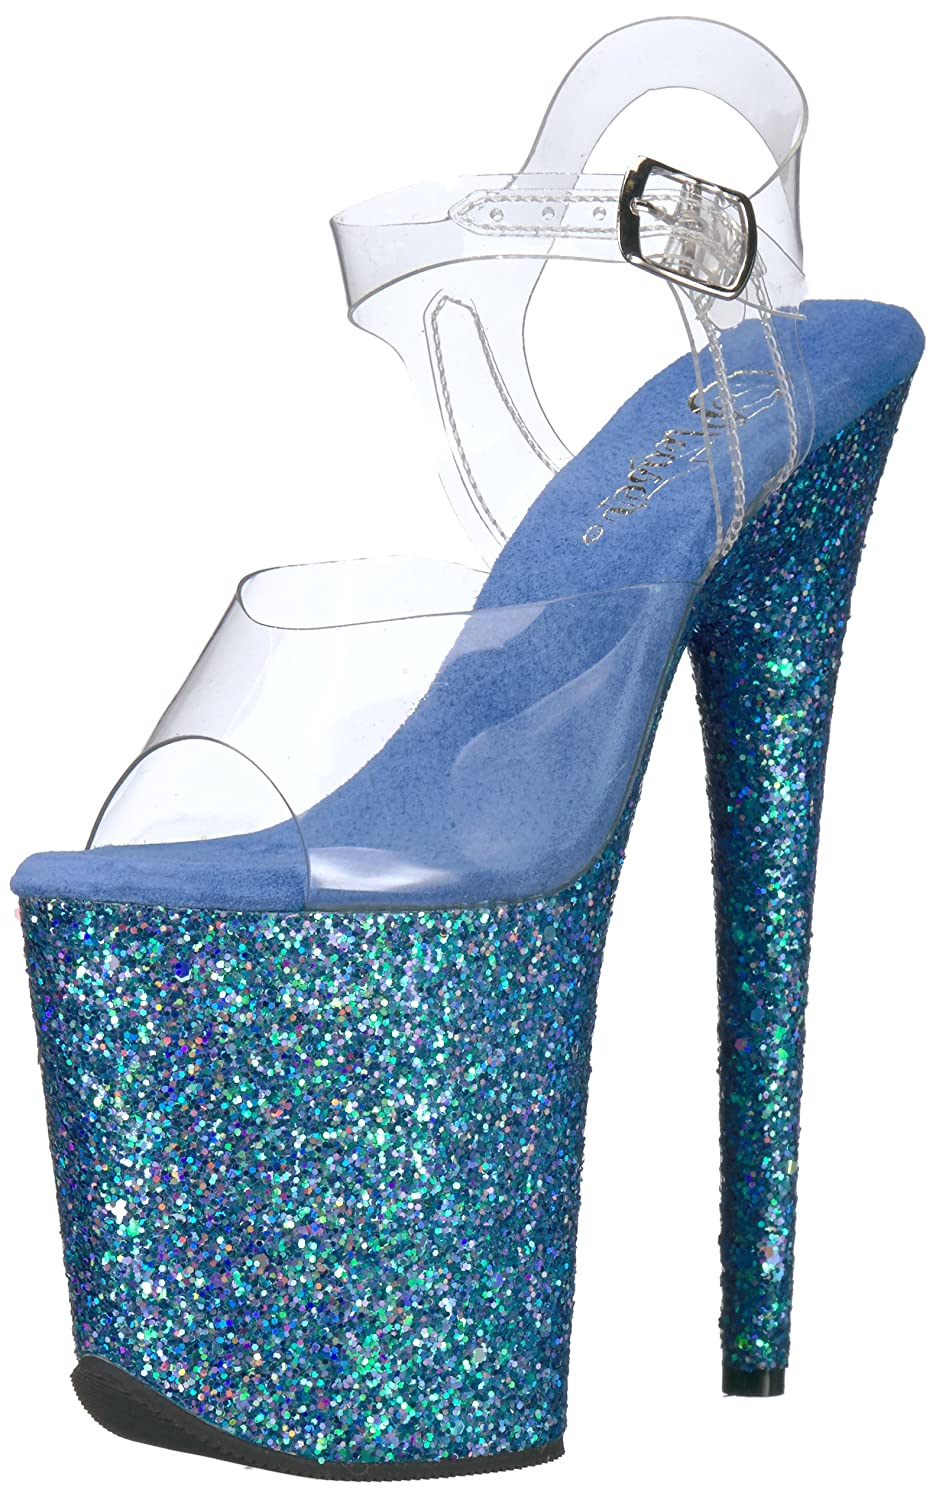 Pleaser Flamingo-808lg, Bout Ouvert Femme Transparent Transparent Glitter) (Clr Ouvert/Blue Holo Glitter) 49b32b8 - therethere.space